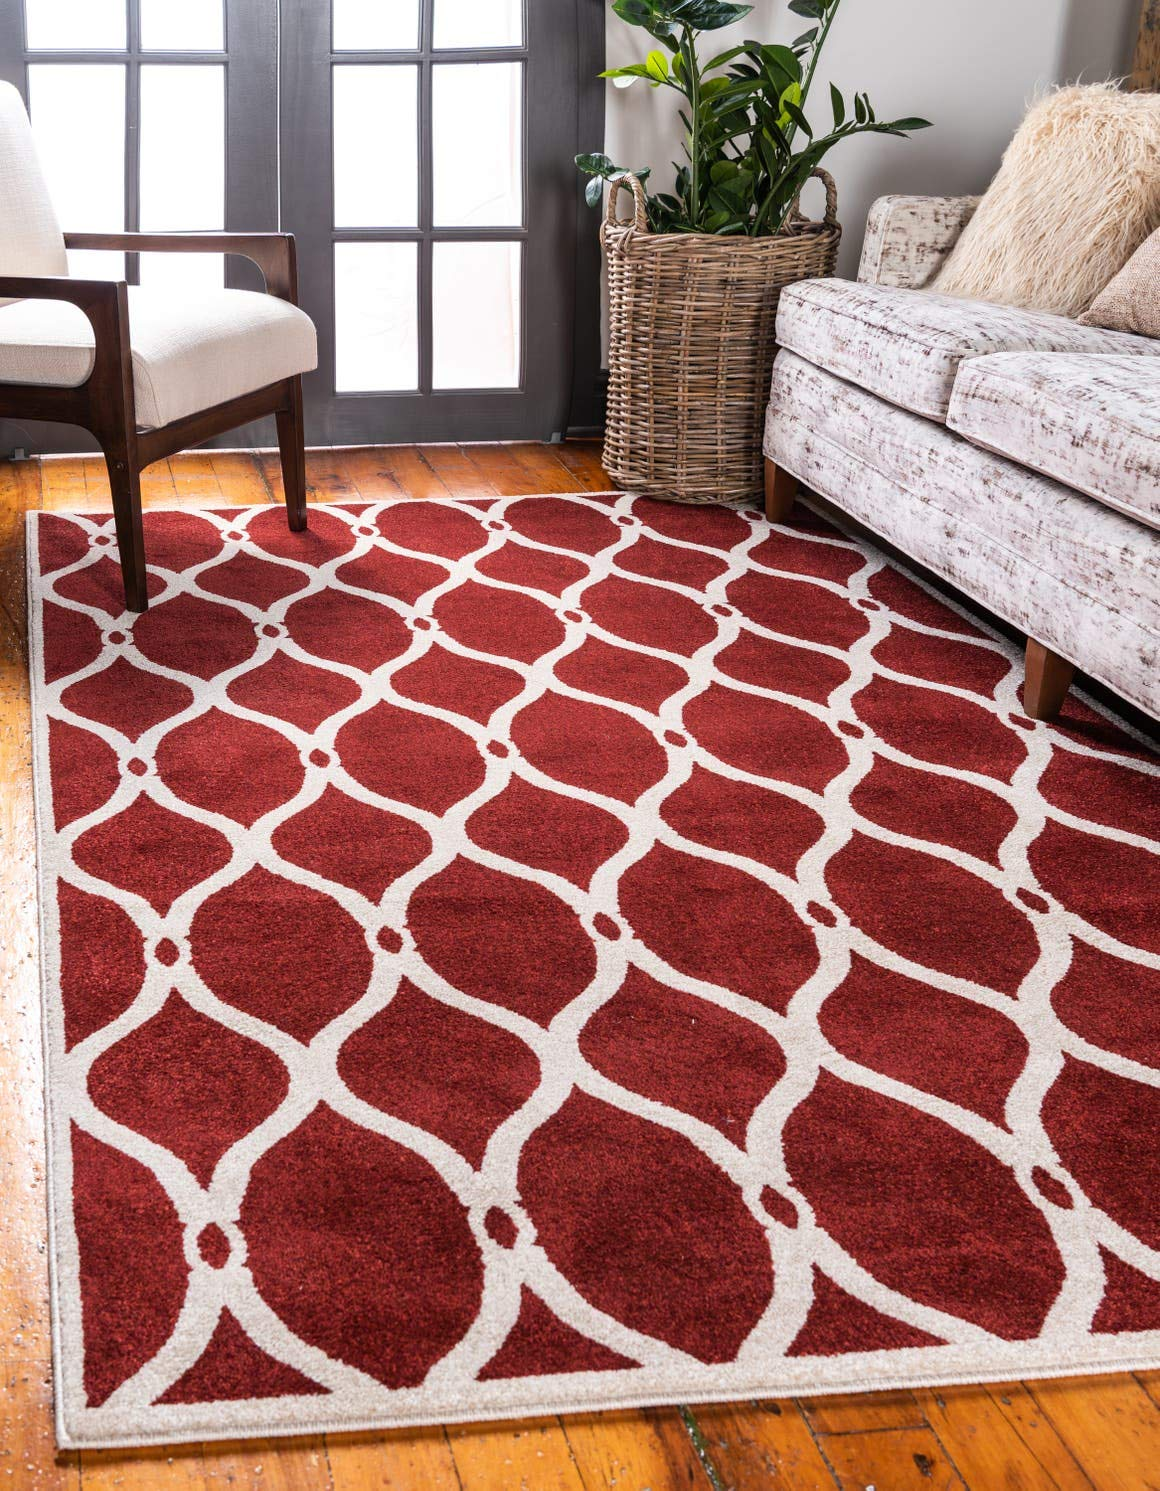 Unique Loom Trellis Collection Geometric Modern Red Area Rug 5 0 x 8 0